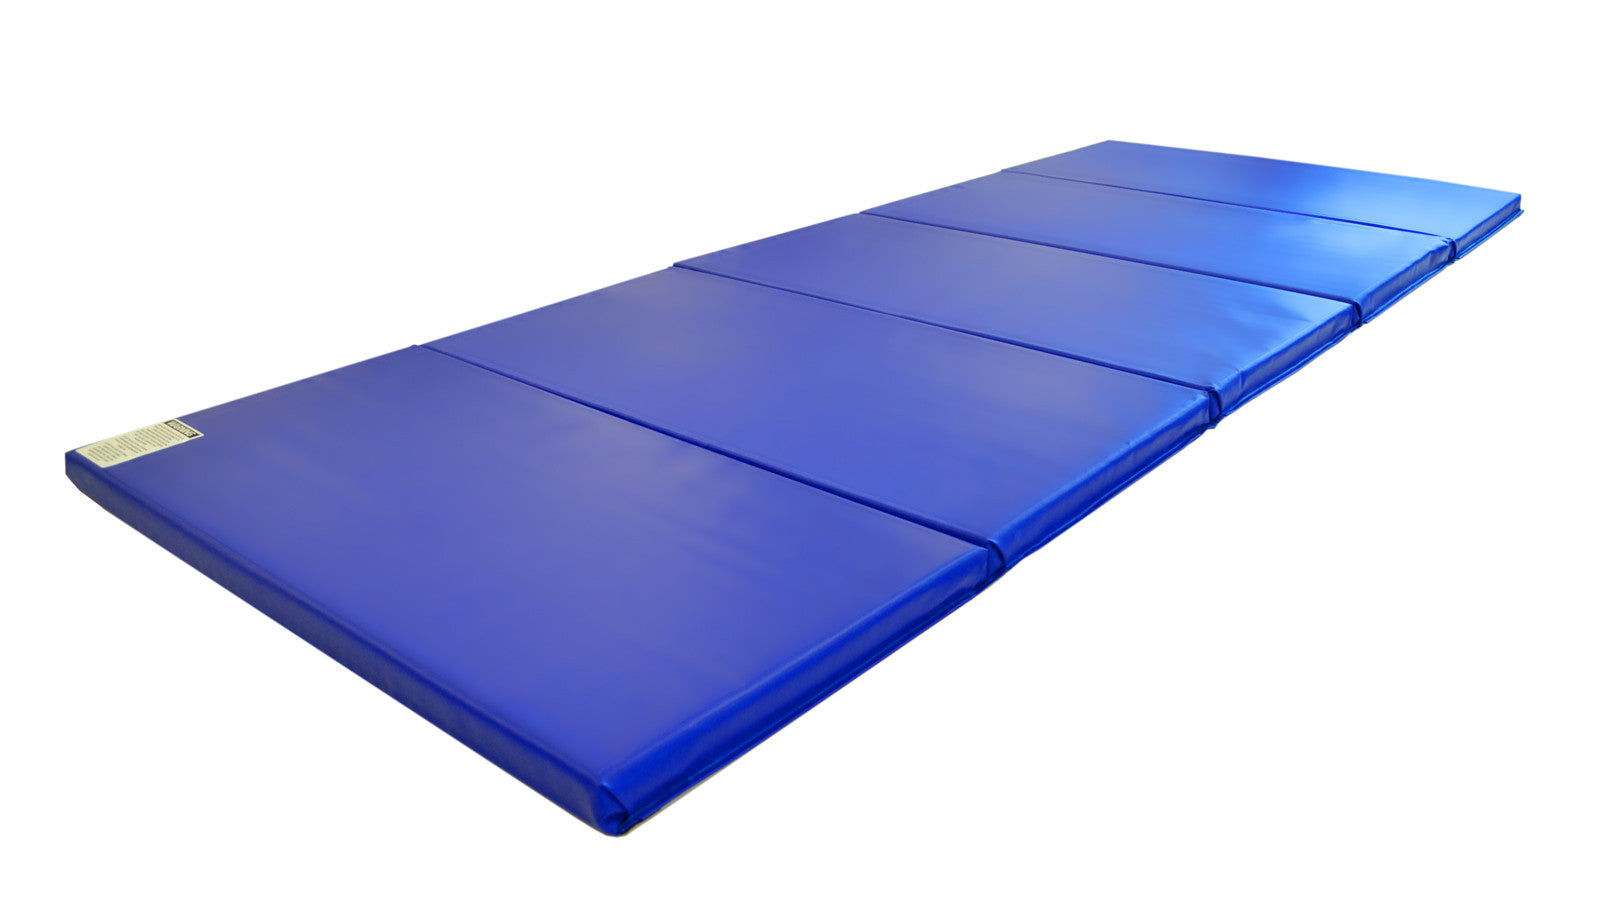 "CLEARANCE LOWEST PRICE OF THE  YEAR 4' x 10' x 1 3/8"" Advanced Level Gymnastics Mat"